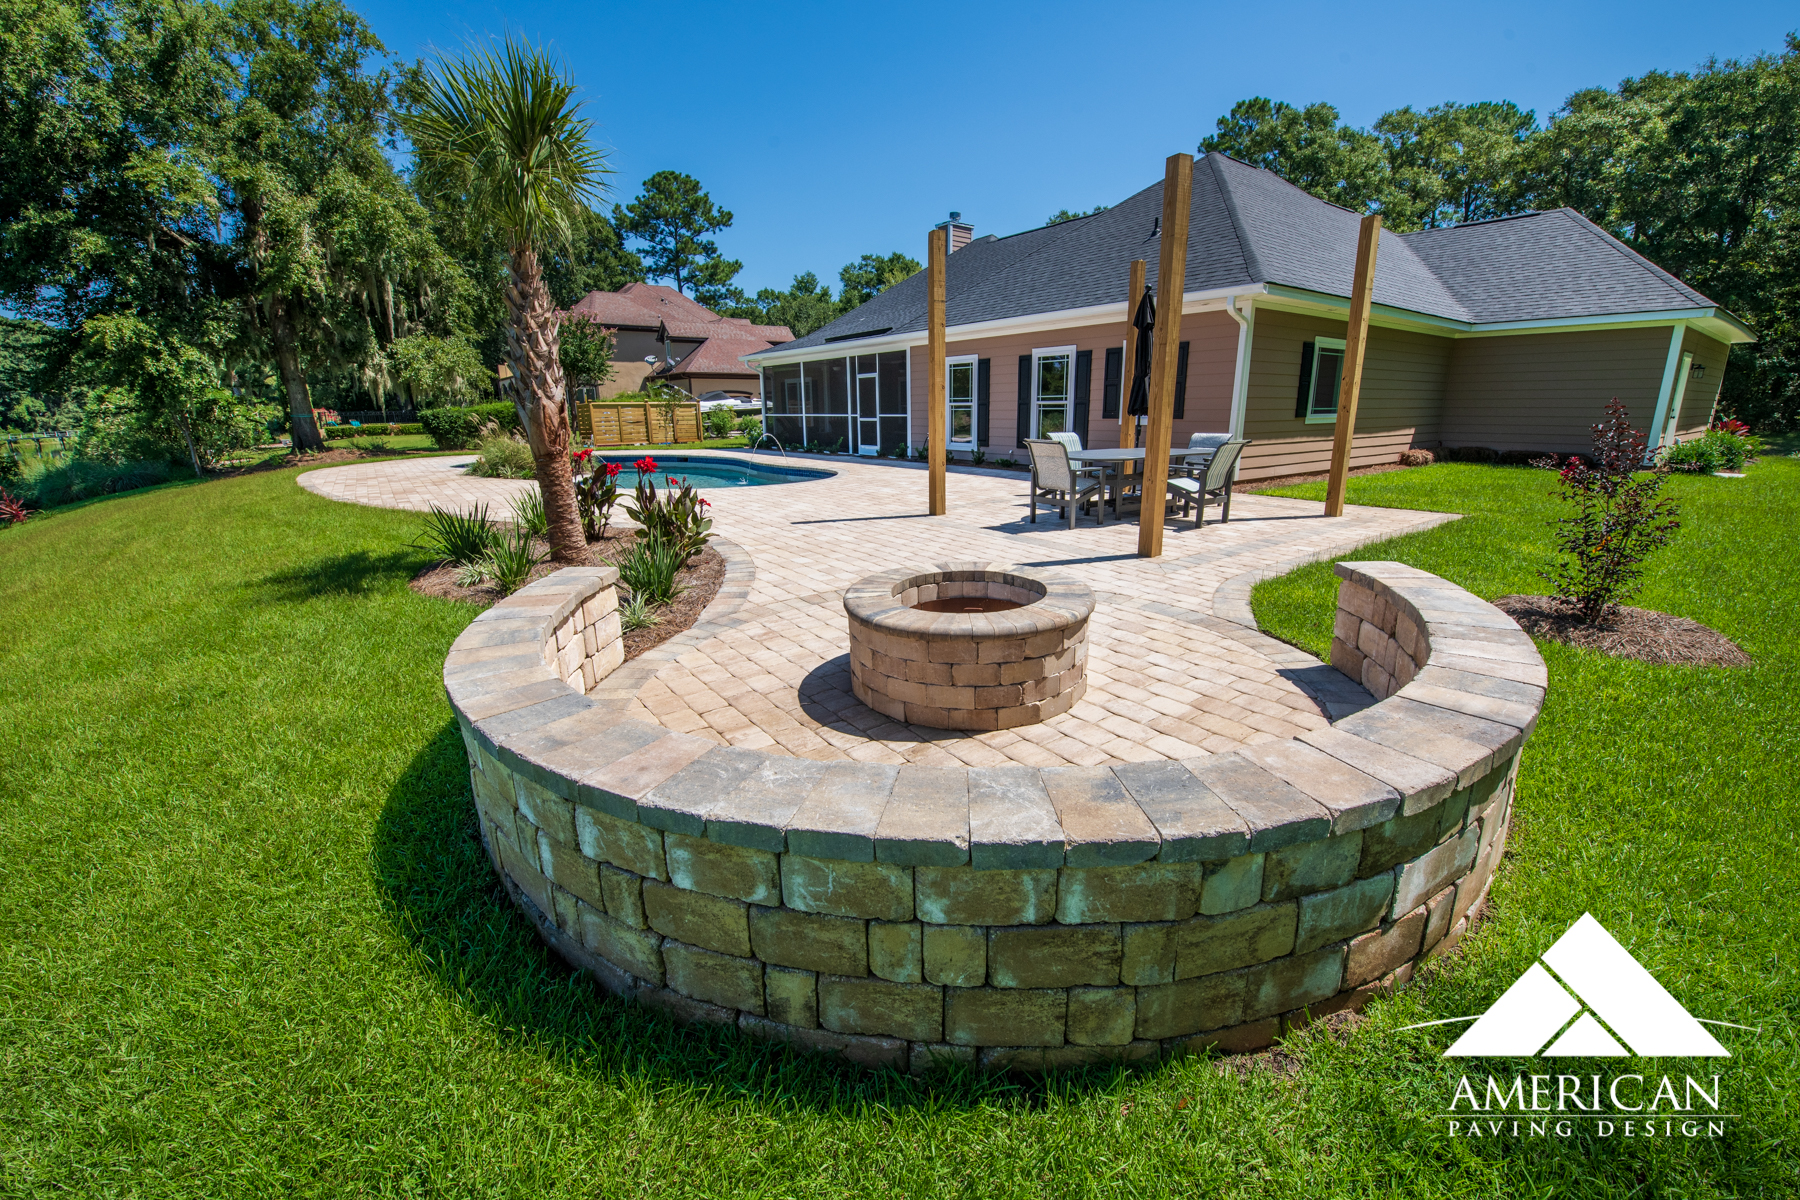 New circular paver patio design! Equipped with a wood burning fire pit and block built seating walls!